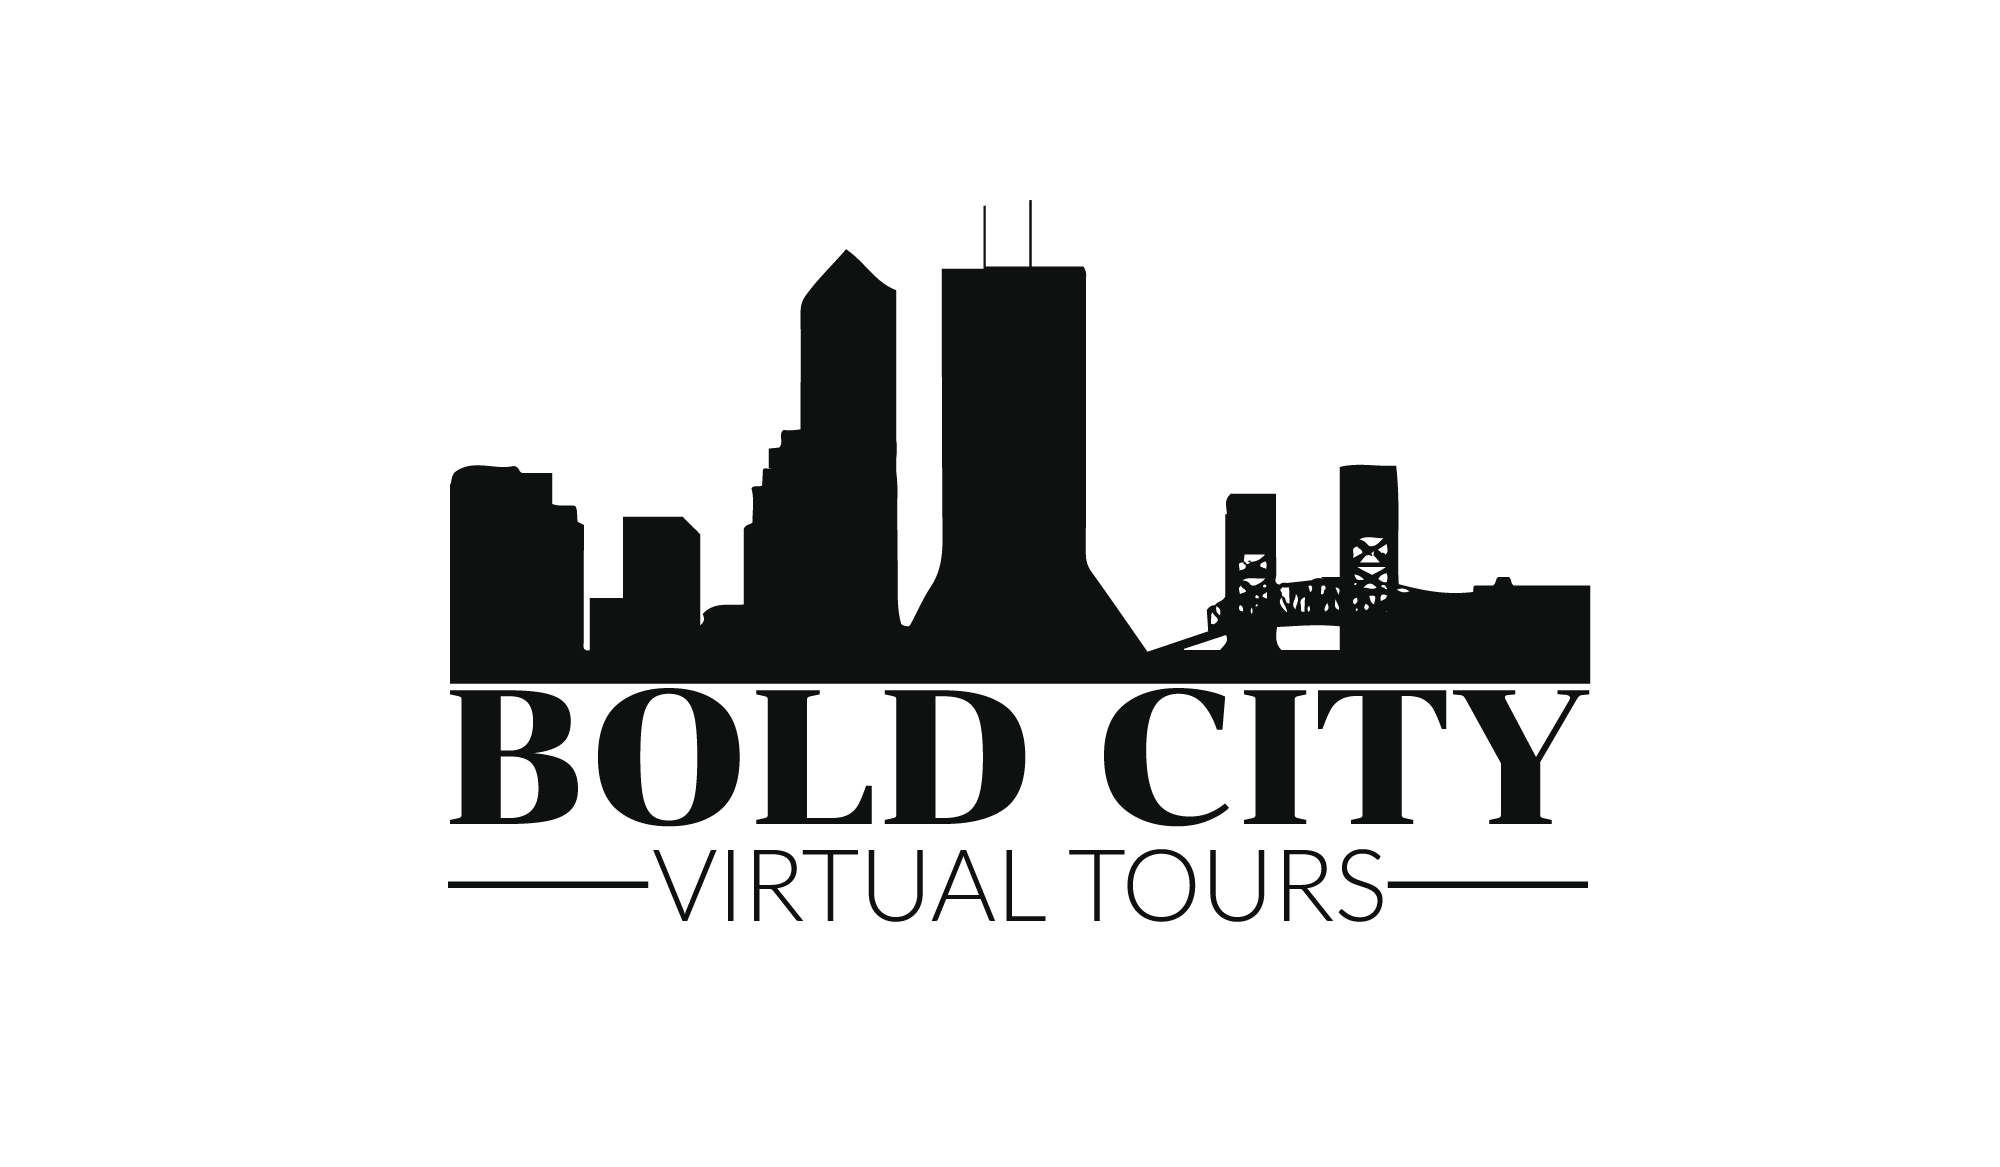 Bold City Virtual Tours floor plan Robbinsville